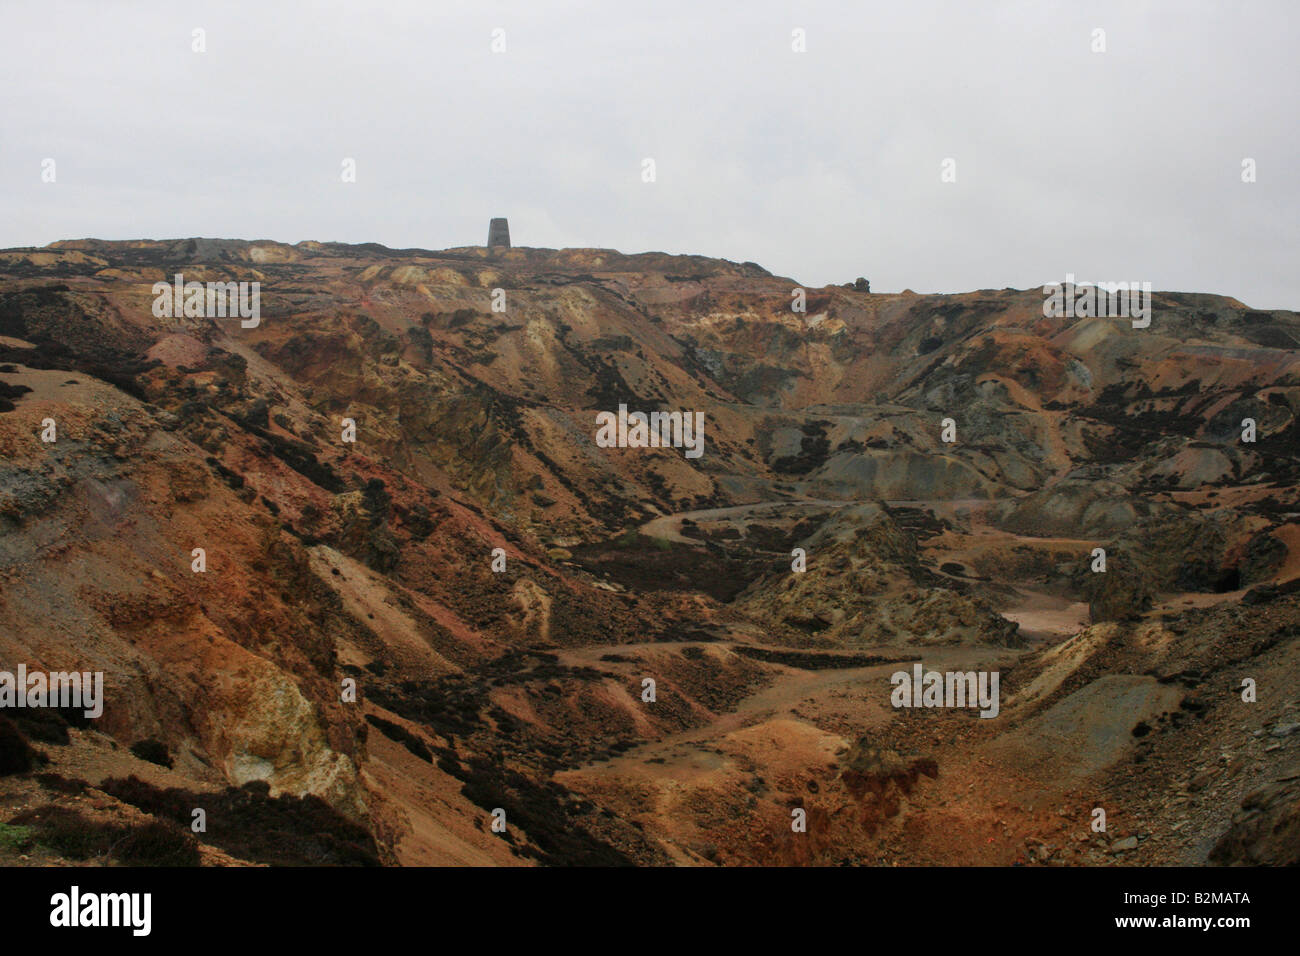 Man made landscape created by copper mining in Parys Mountain in the island of Anglesey - Stock Image